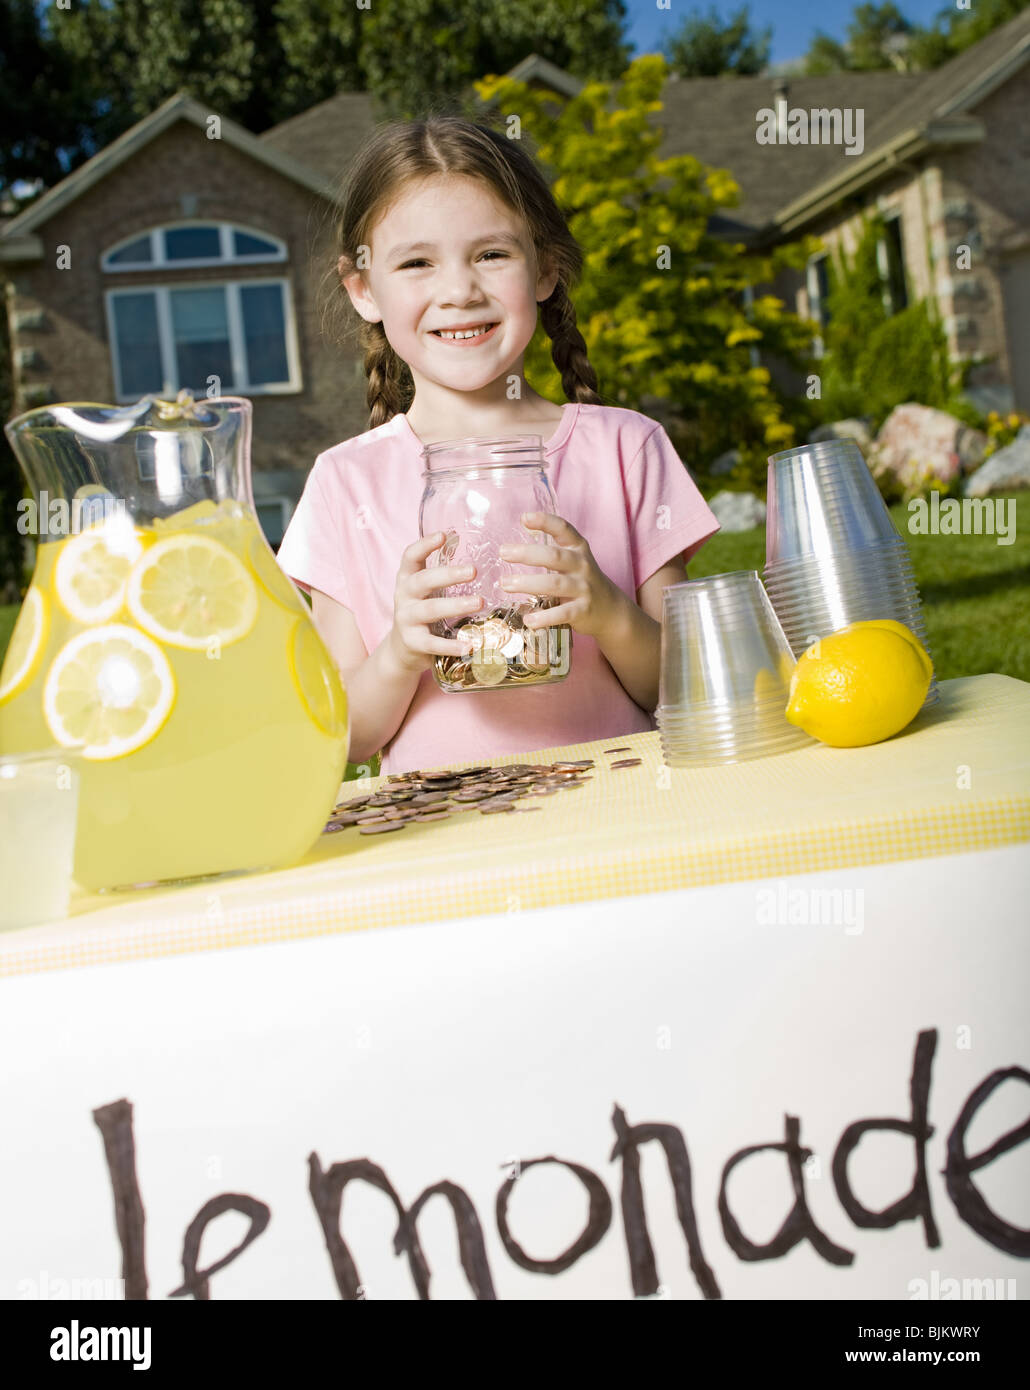 Young girl with lemonade stand and money jar - Stock Image